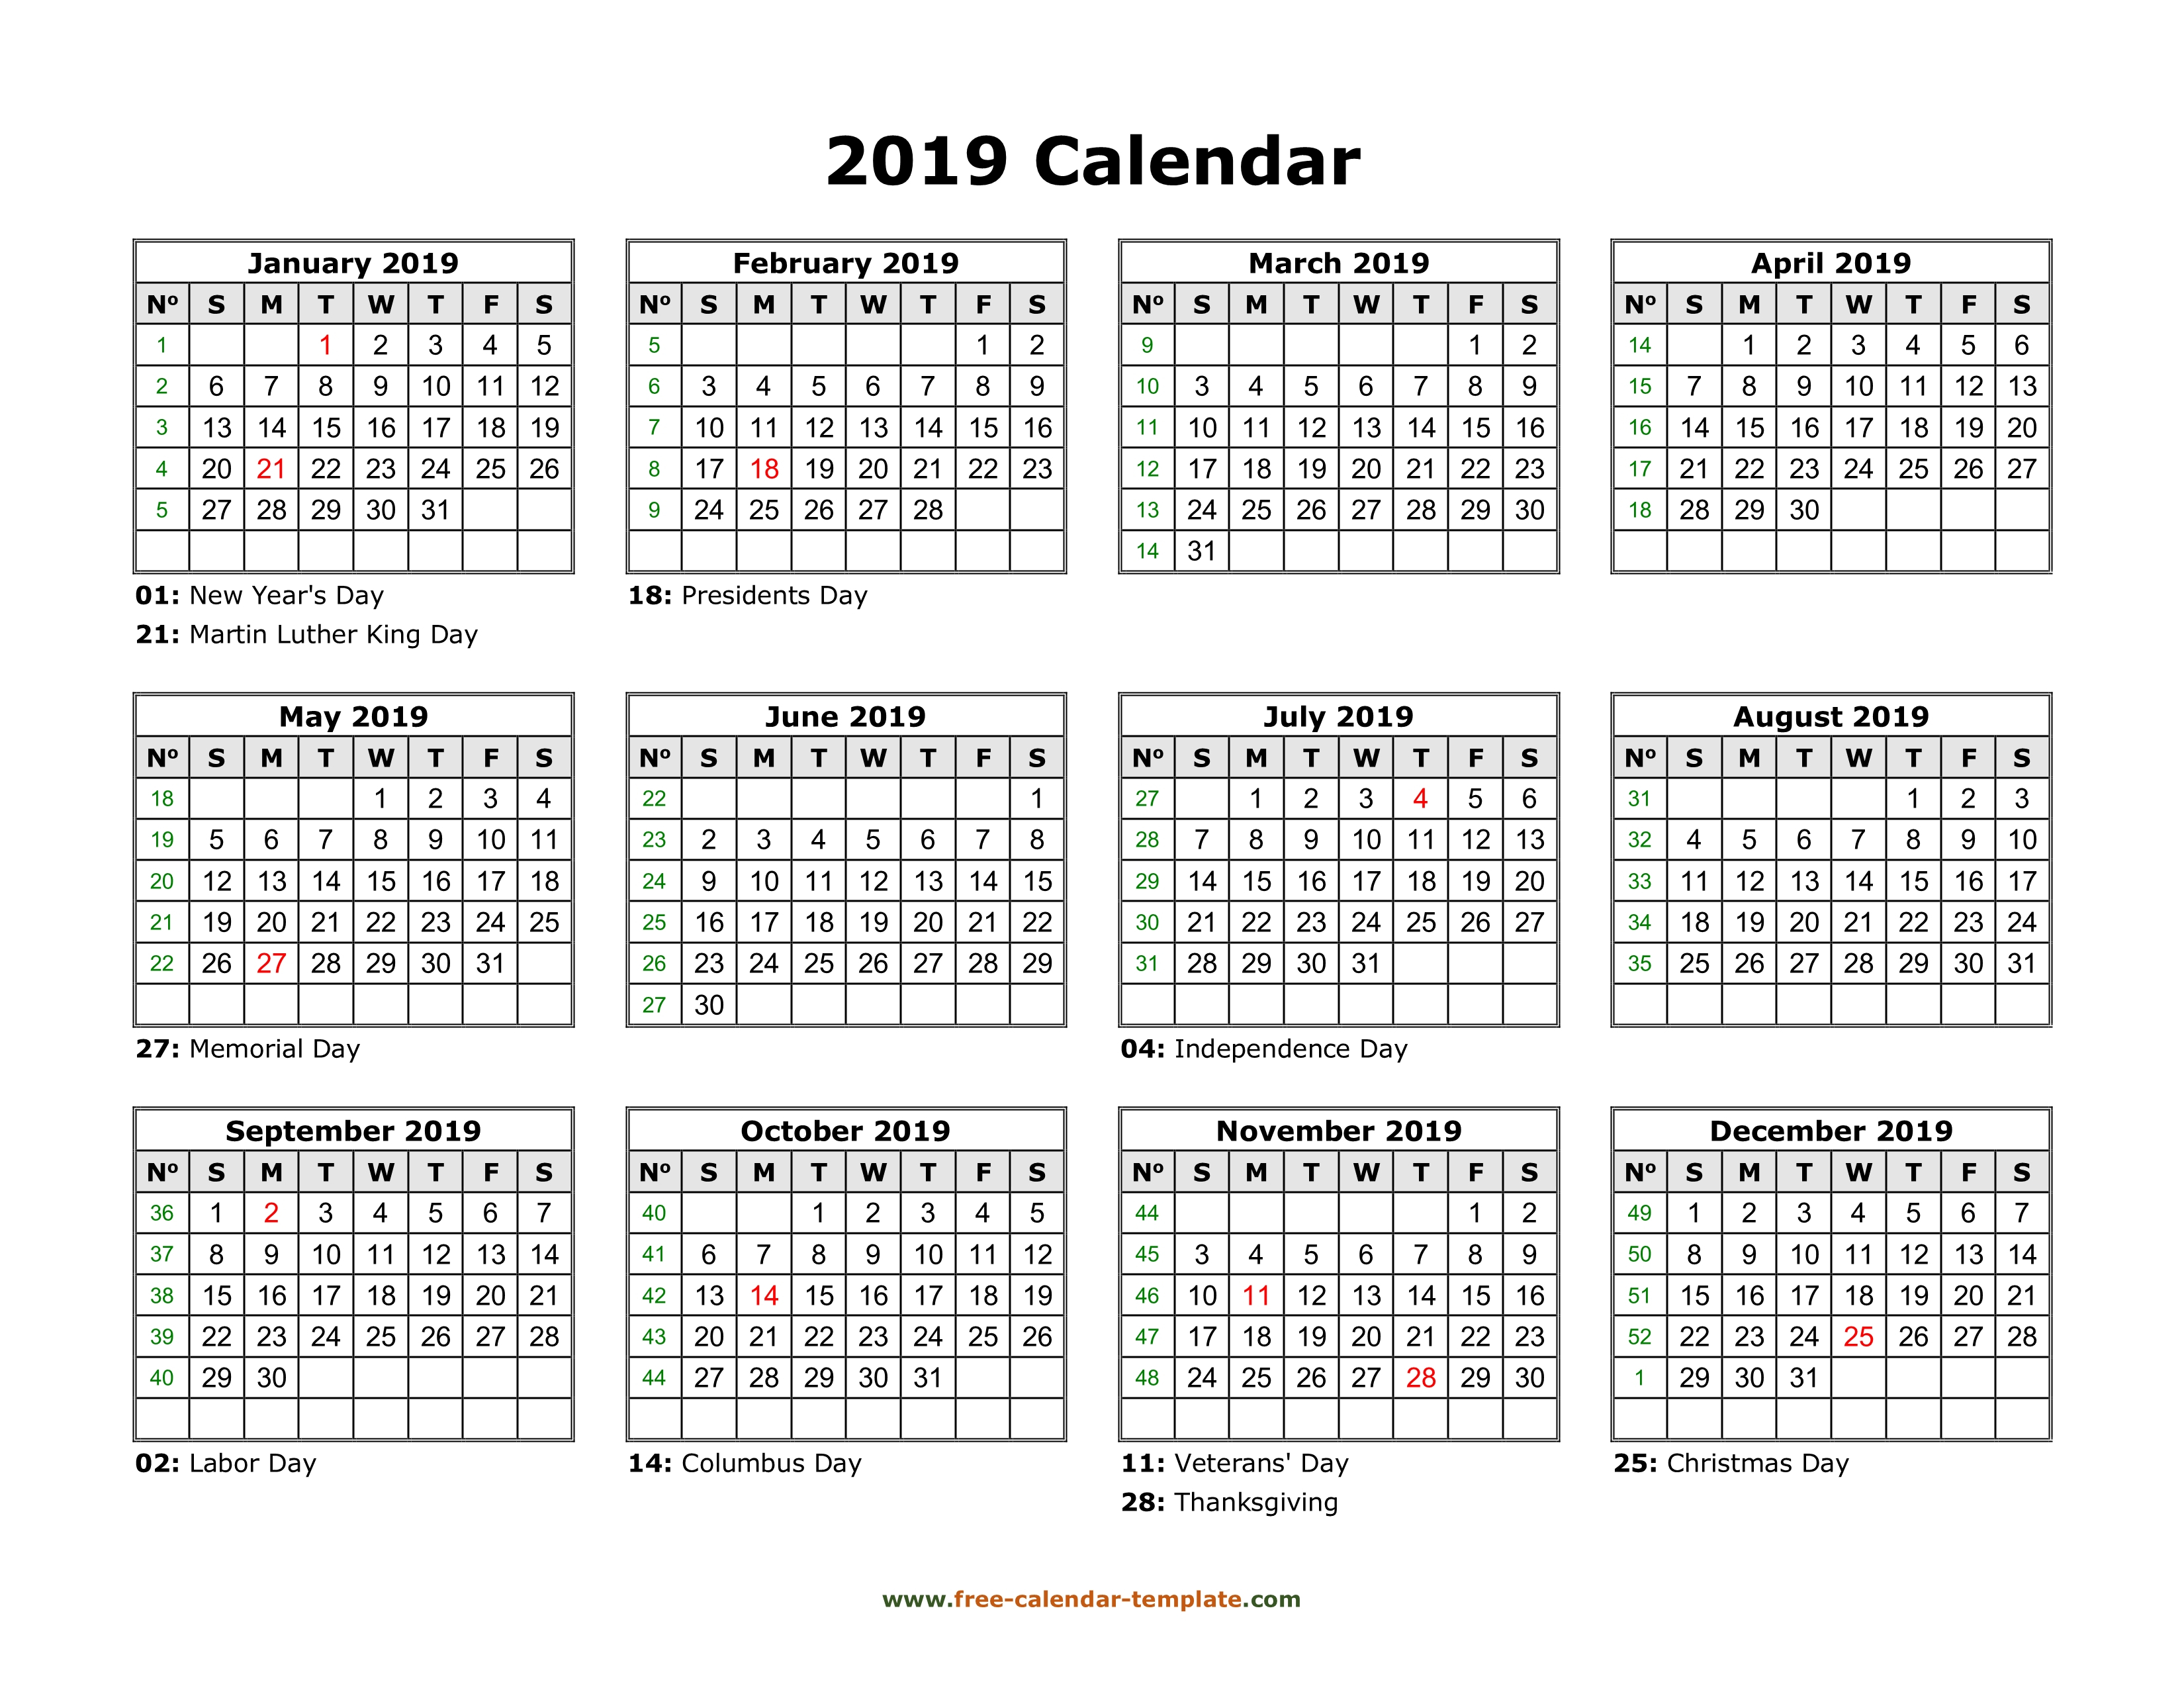 Printable Yearly Calendar 2019 | Free-Calendar-Template